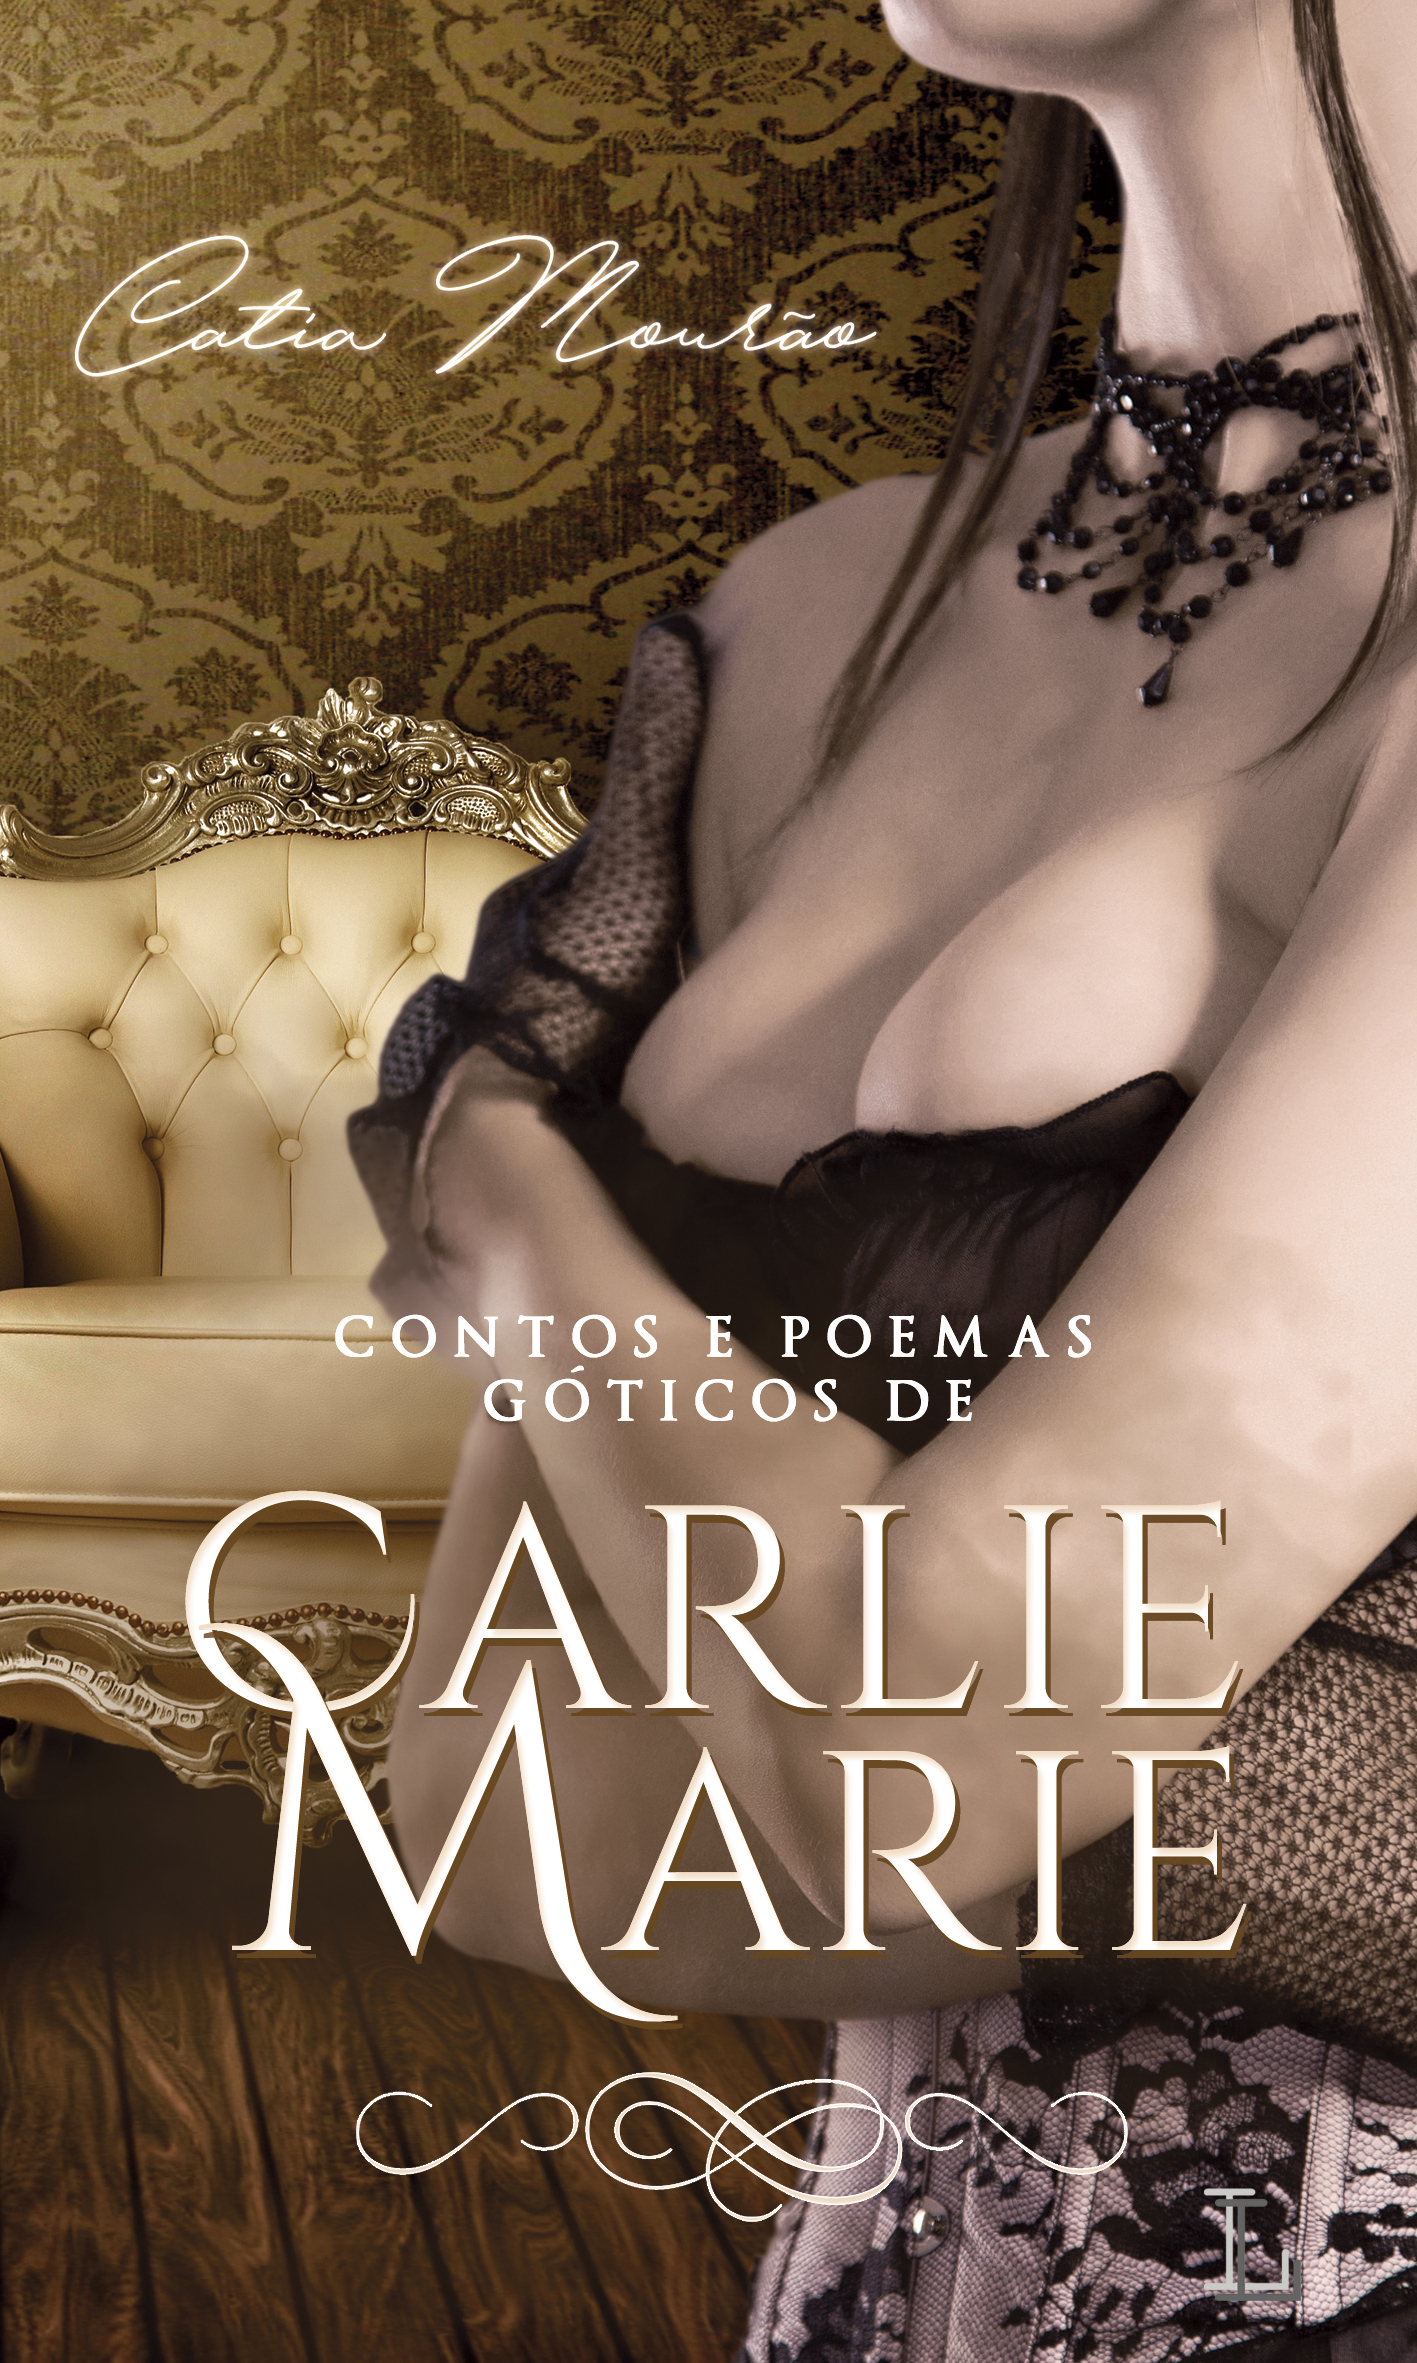 Gothic Tales and Poems by Carlie Marie